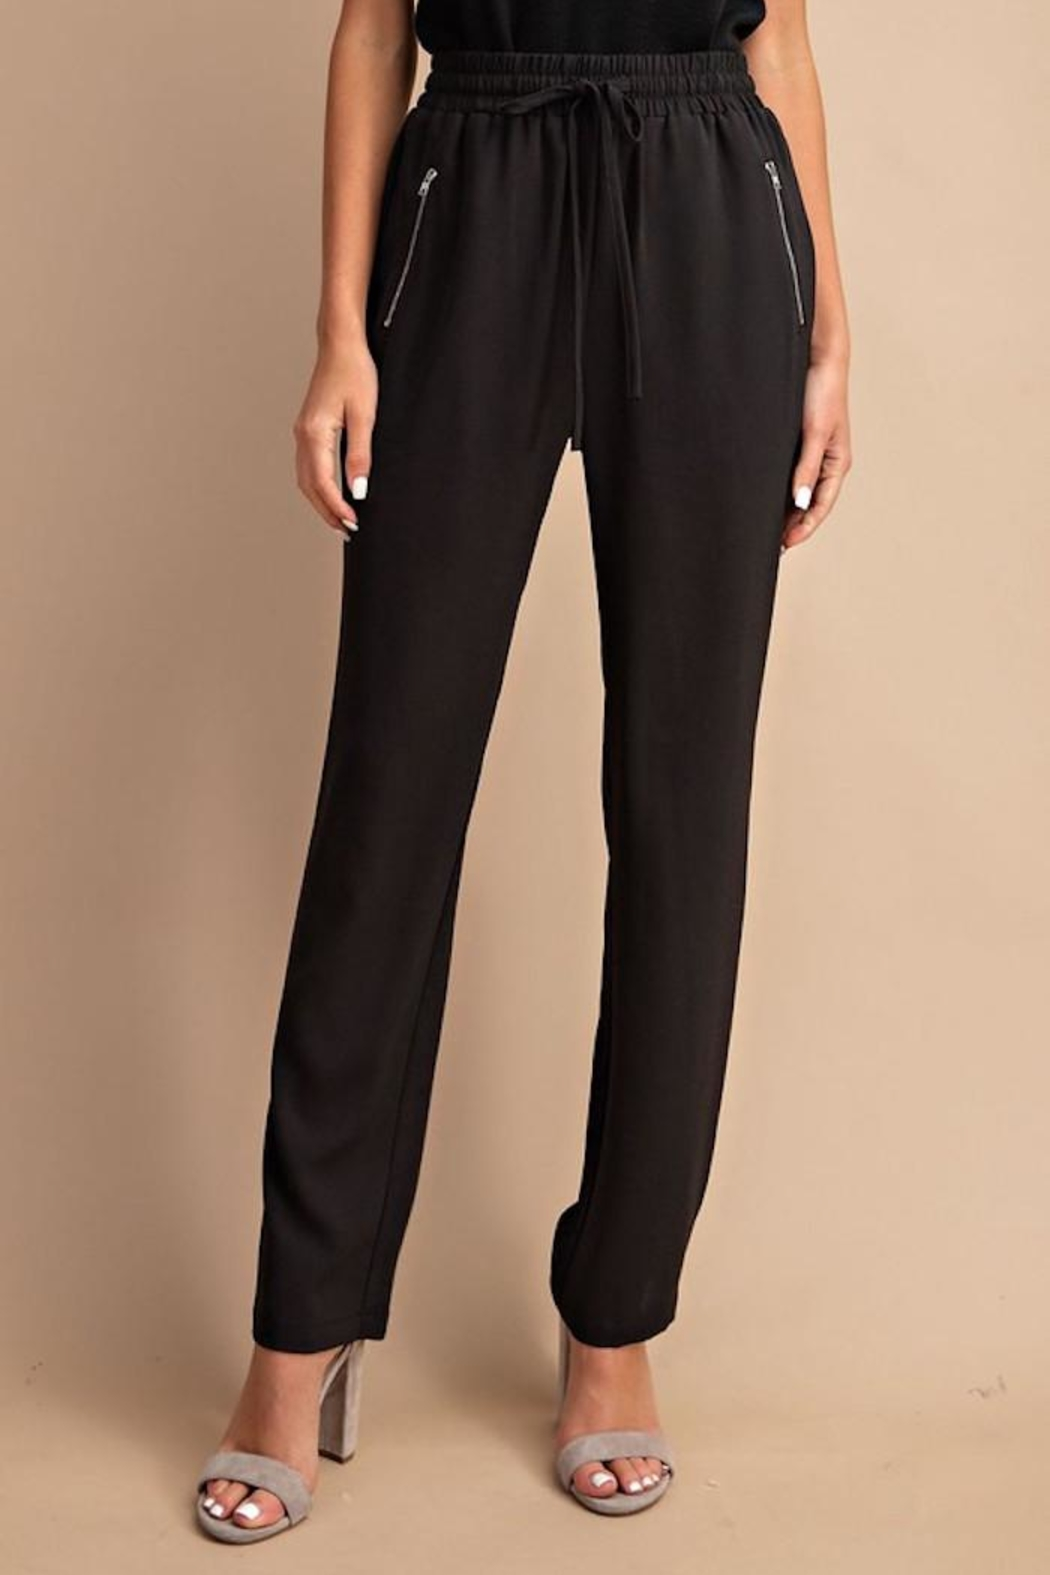 eesome Trendy Trousers - Side Cropped Image